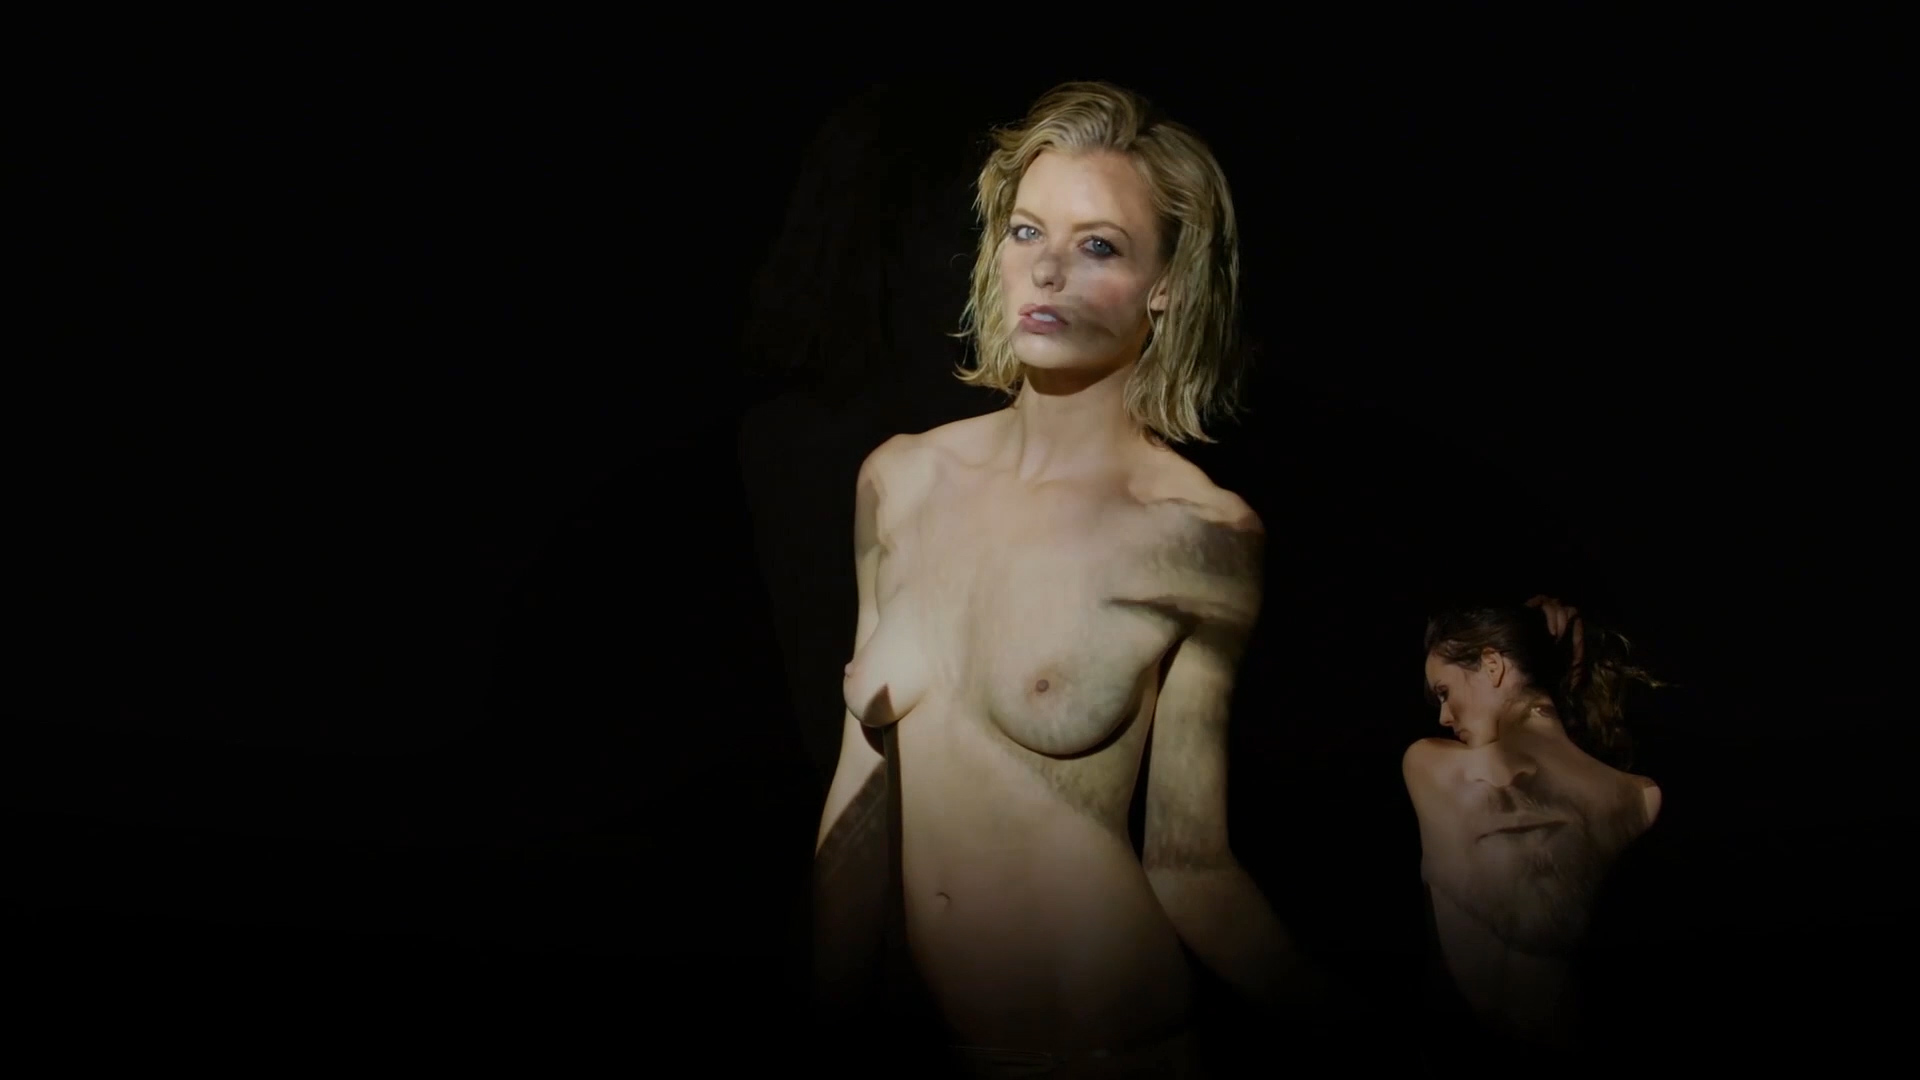 Felicia Porter nude topless and Laura Shields nude - Tunnel Vision (Explicit) - Justin Timberlake hd1080p (12)